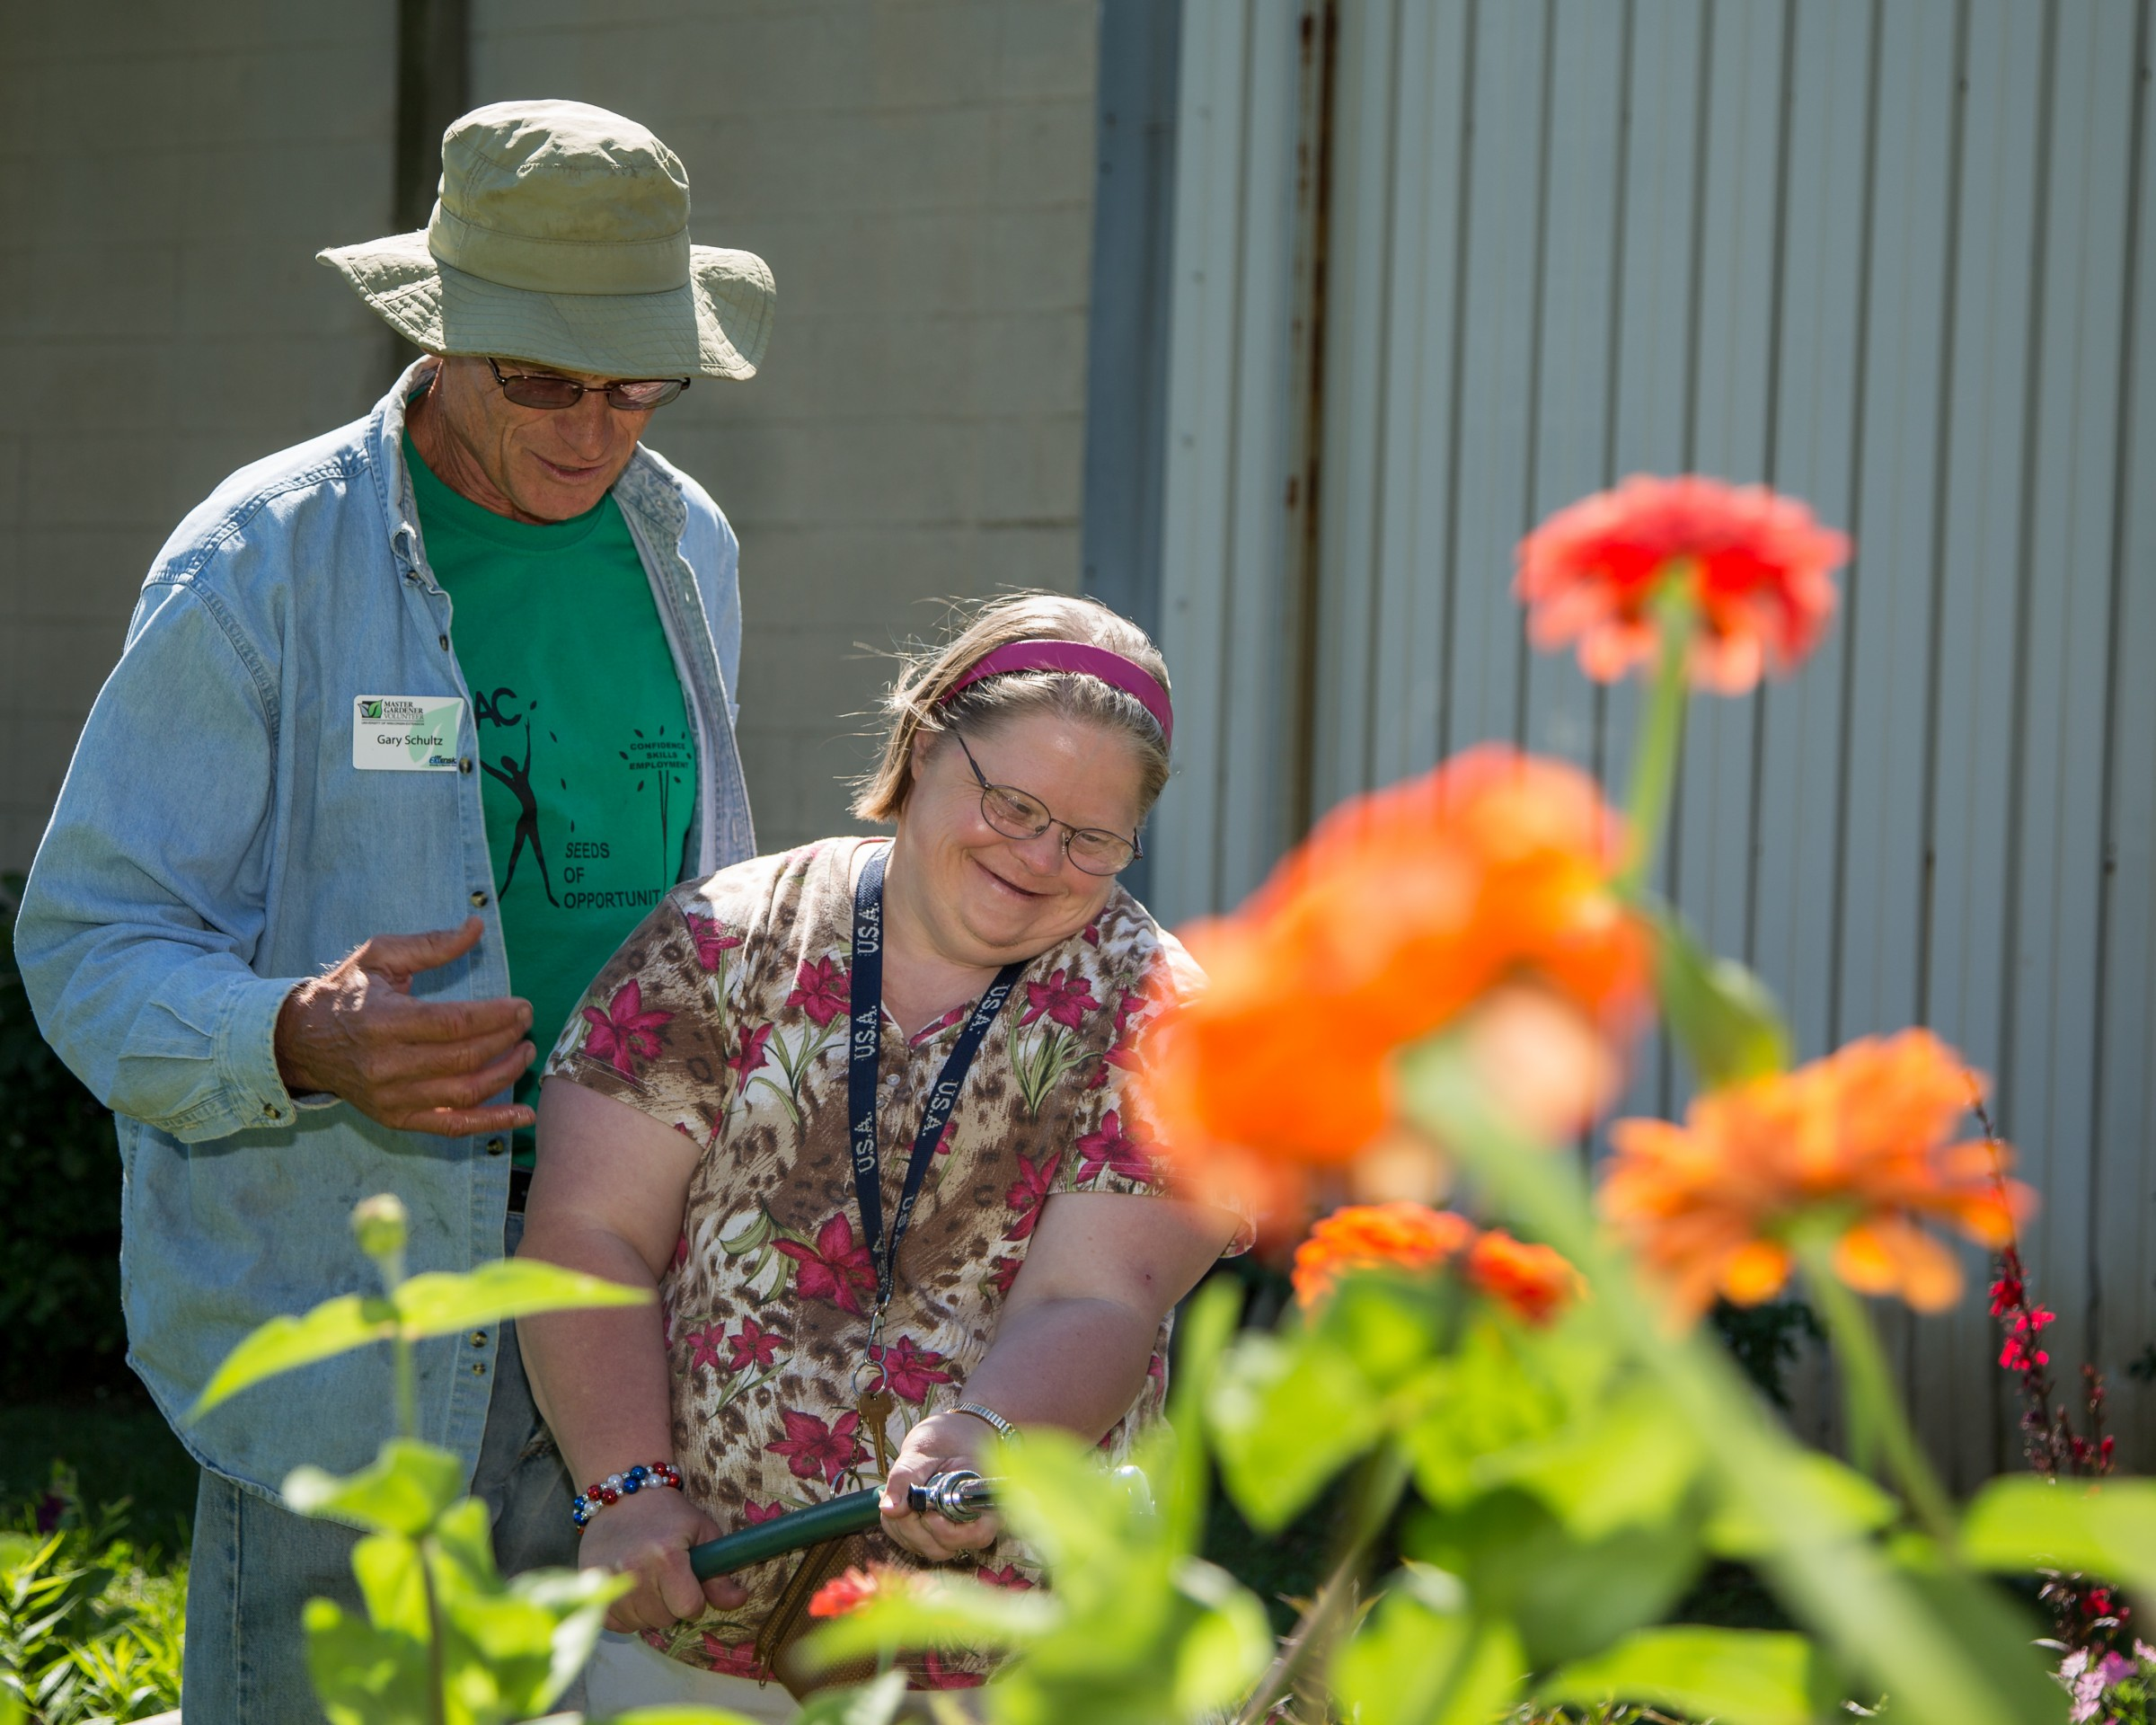 adult with special needs and Master Gardener volunteer